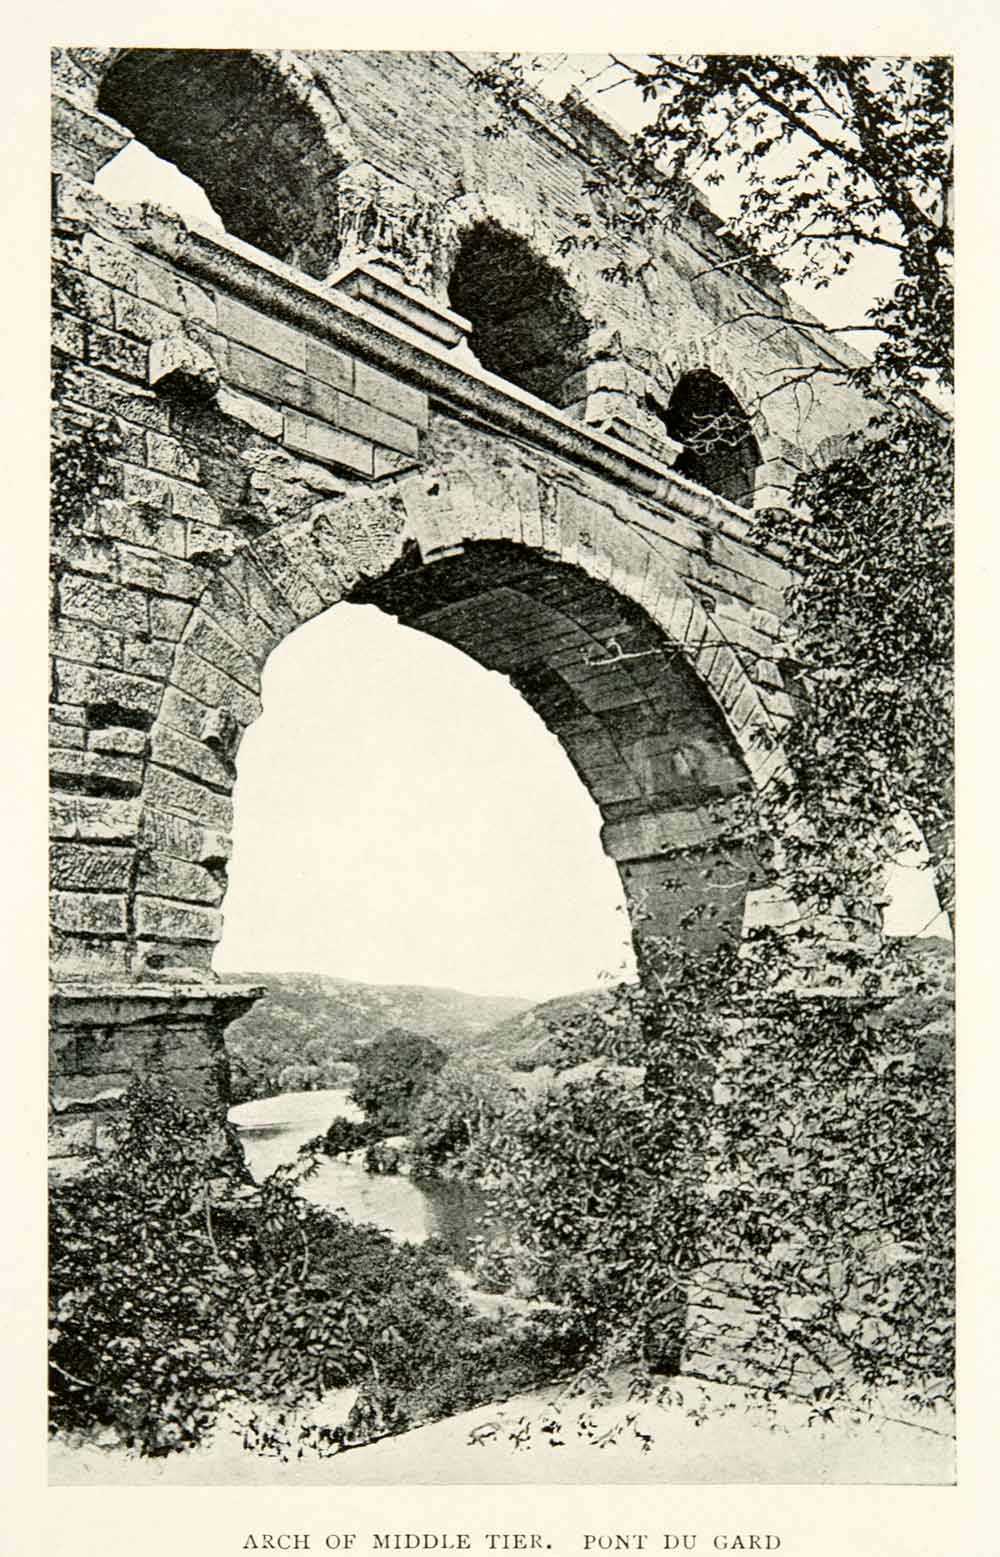 1910 Print Arch Middle Tier Pont Du Gard Roman Aqueduct Engineering XGCB8